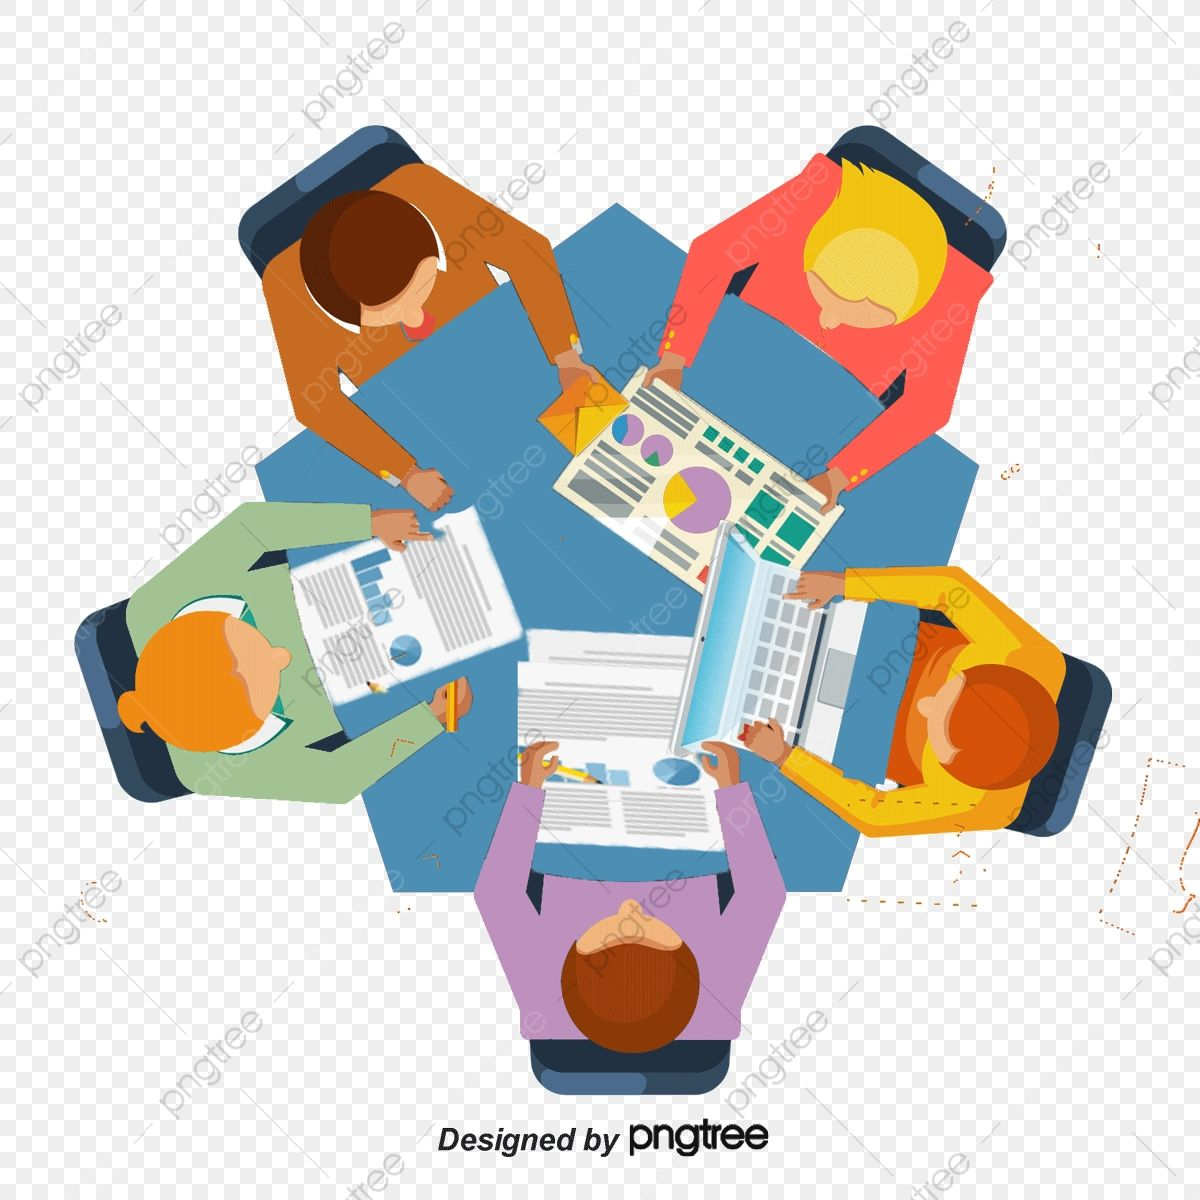 Creative Roundtable Background Vector Material Team Meeting Table Meeting Png Transparent Clipart Image And Psd File For Free Download Social Media Design Inspiration Clip Art Meeting Table